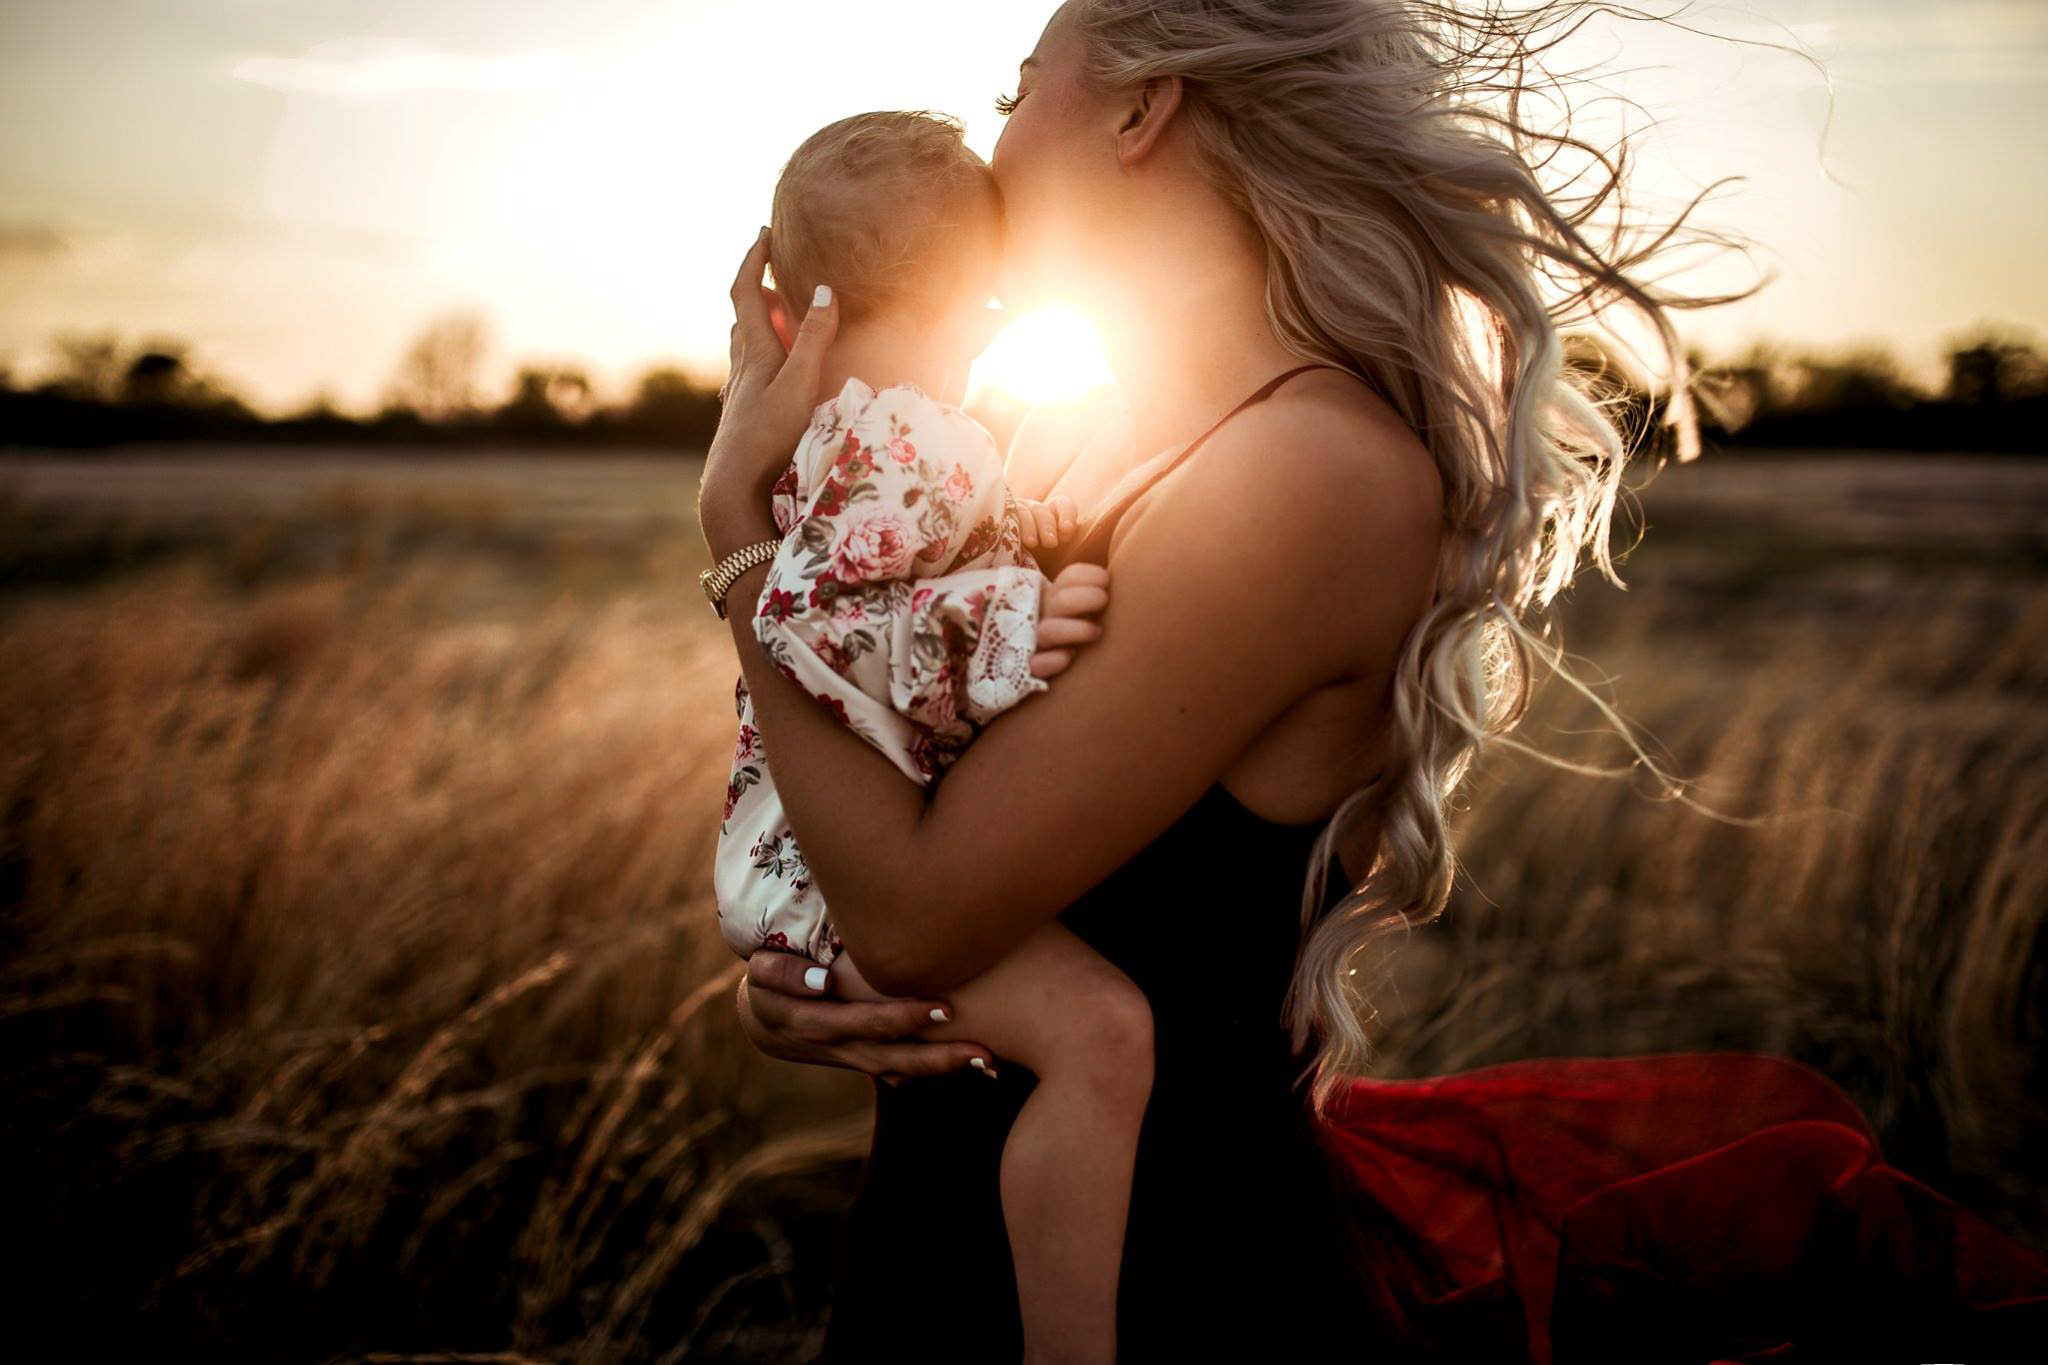 tamra smith horner - emotional storytelling with twyla jones - mother and child embracing in a field at sunset